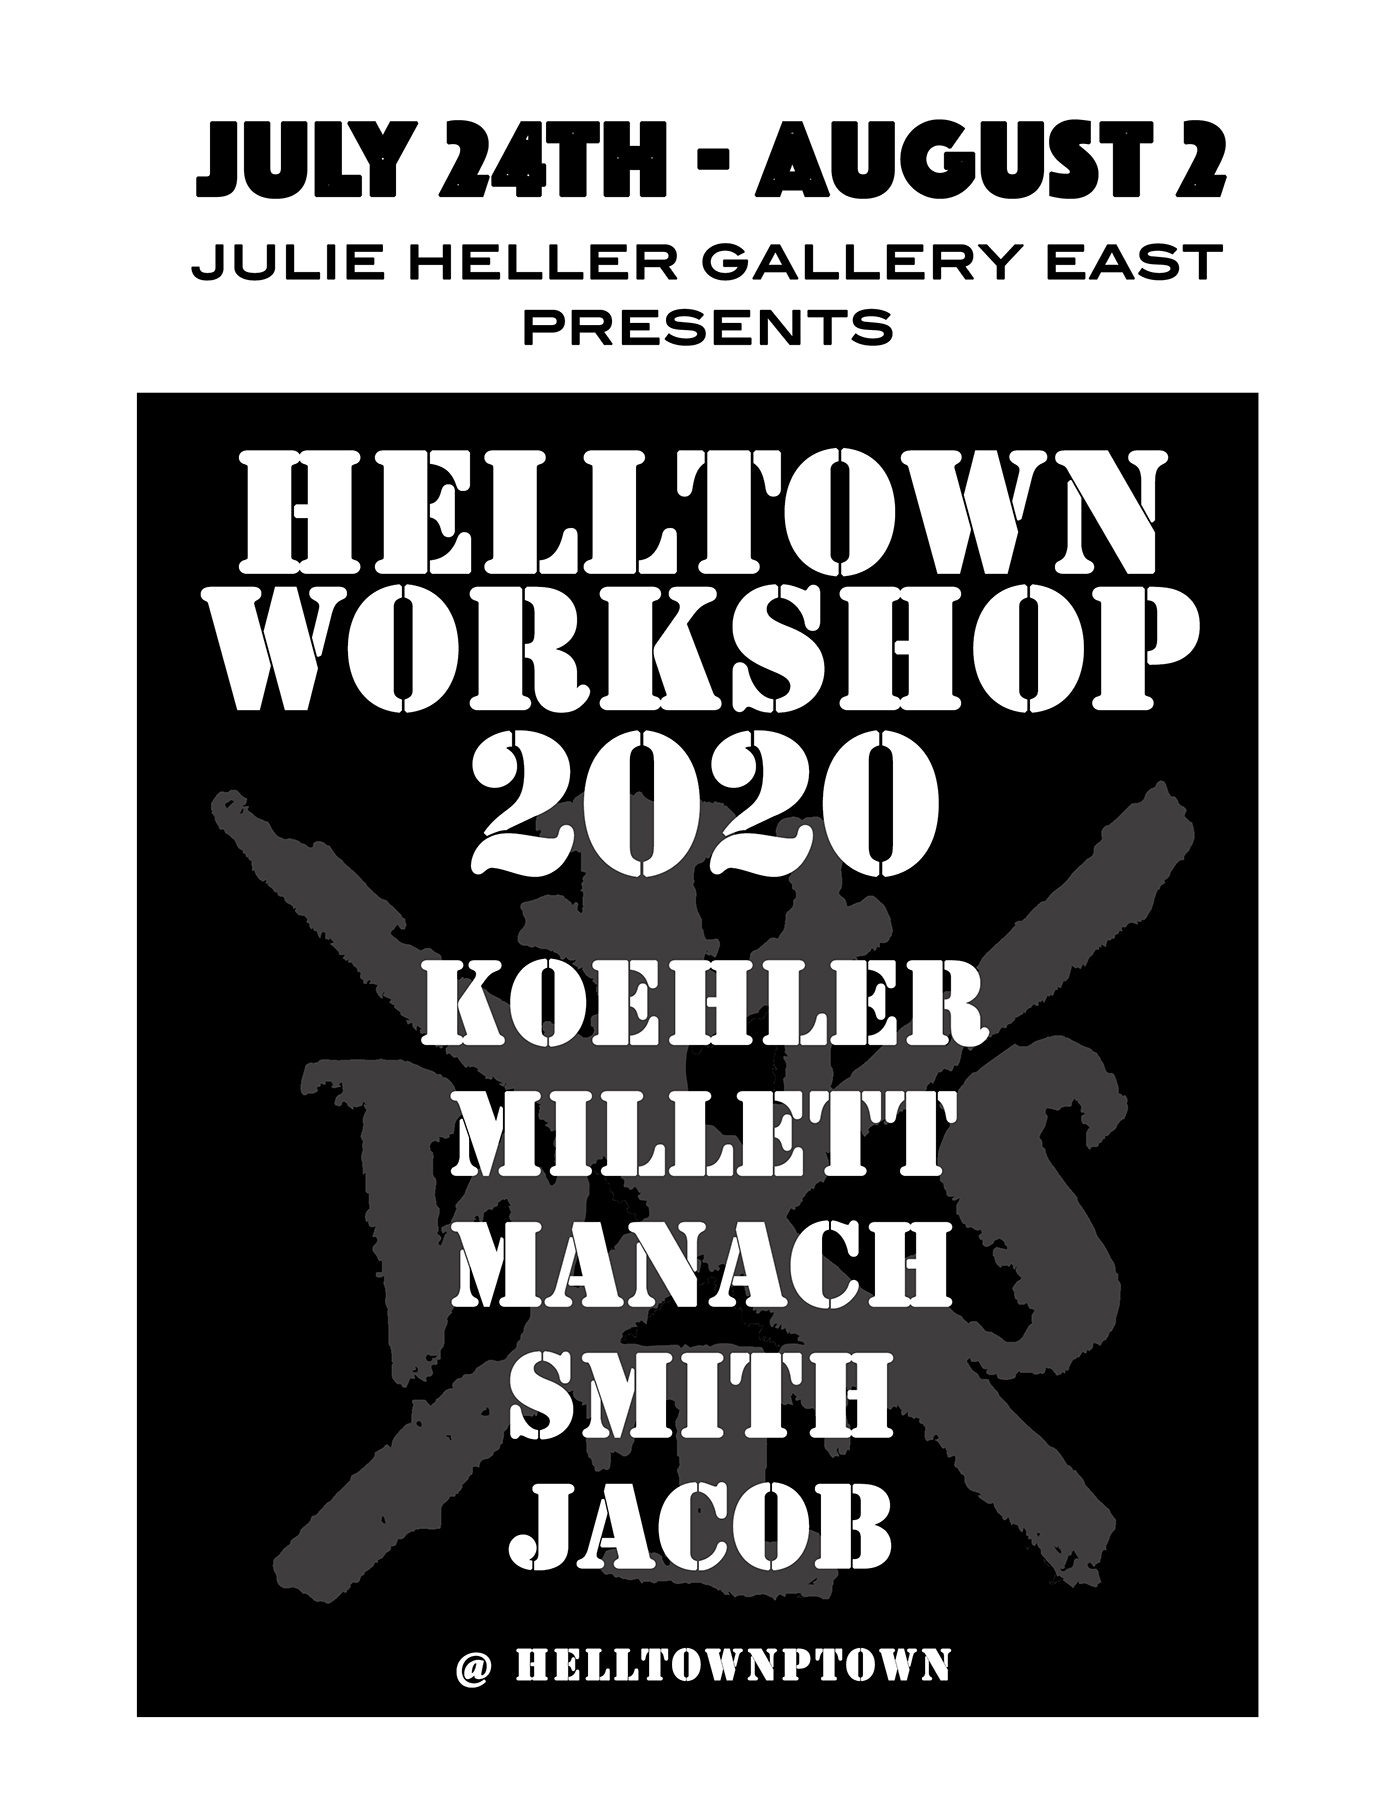 Helltown Workshop 2020